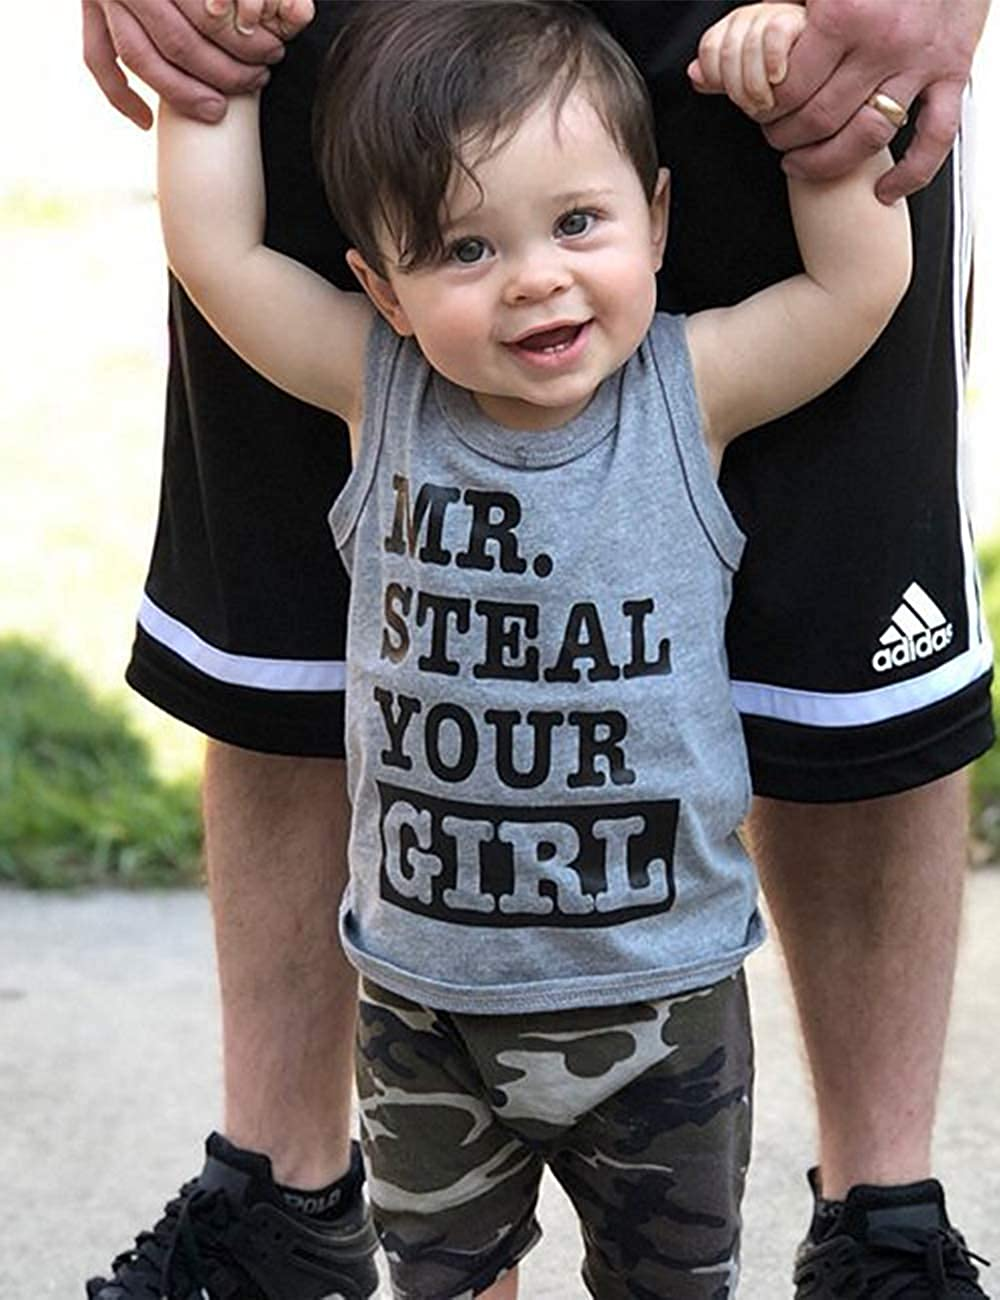 Toddler Baby Infant Boy Clothes Mr Steal Your Girl Vest and Camouflage Shorts Summer Outfit Set